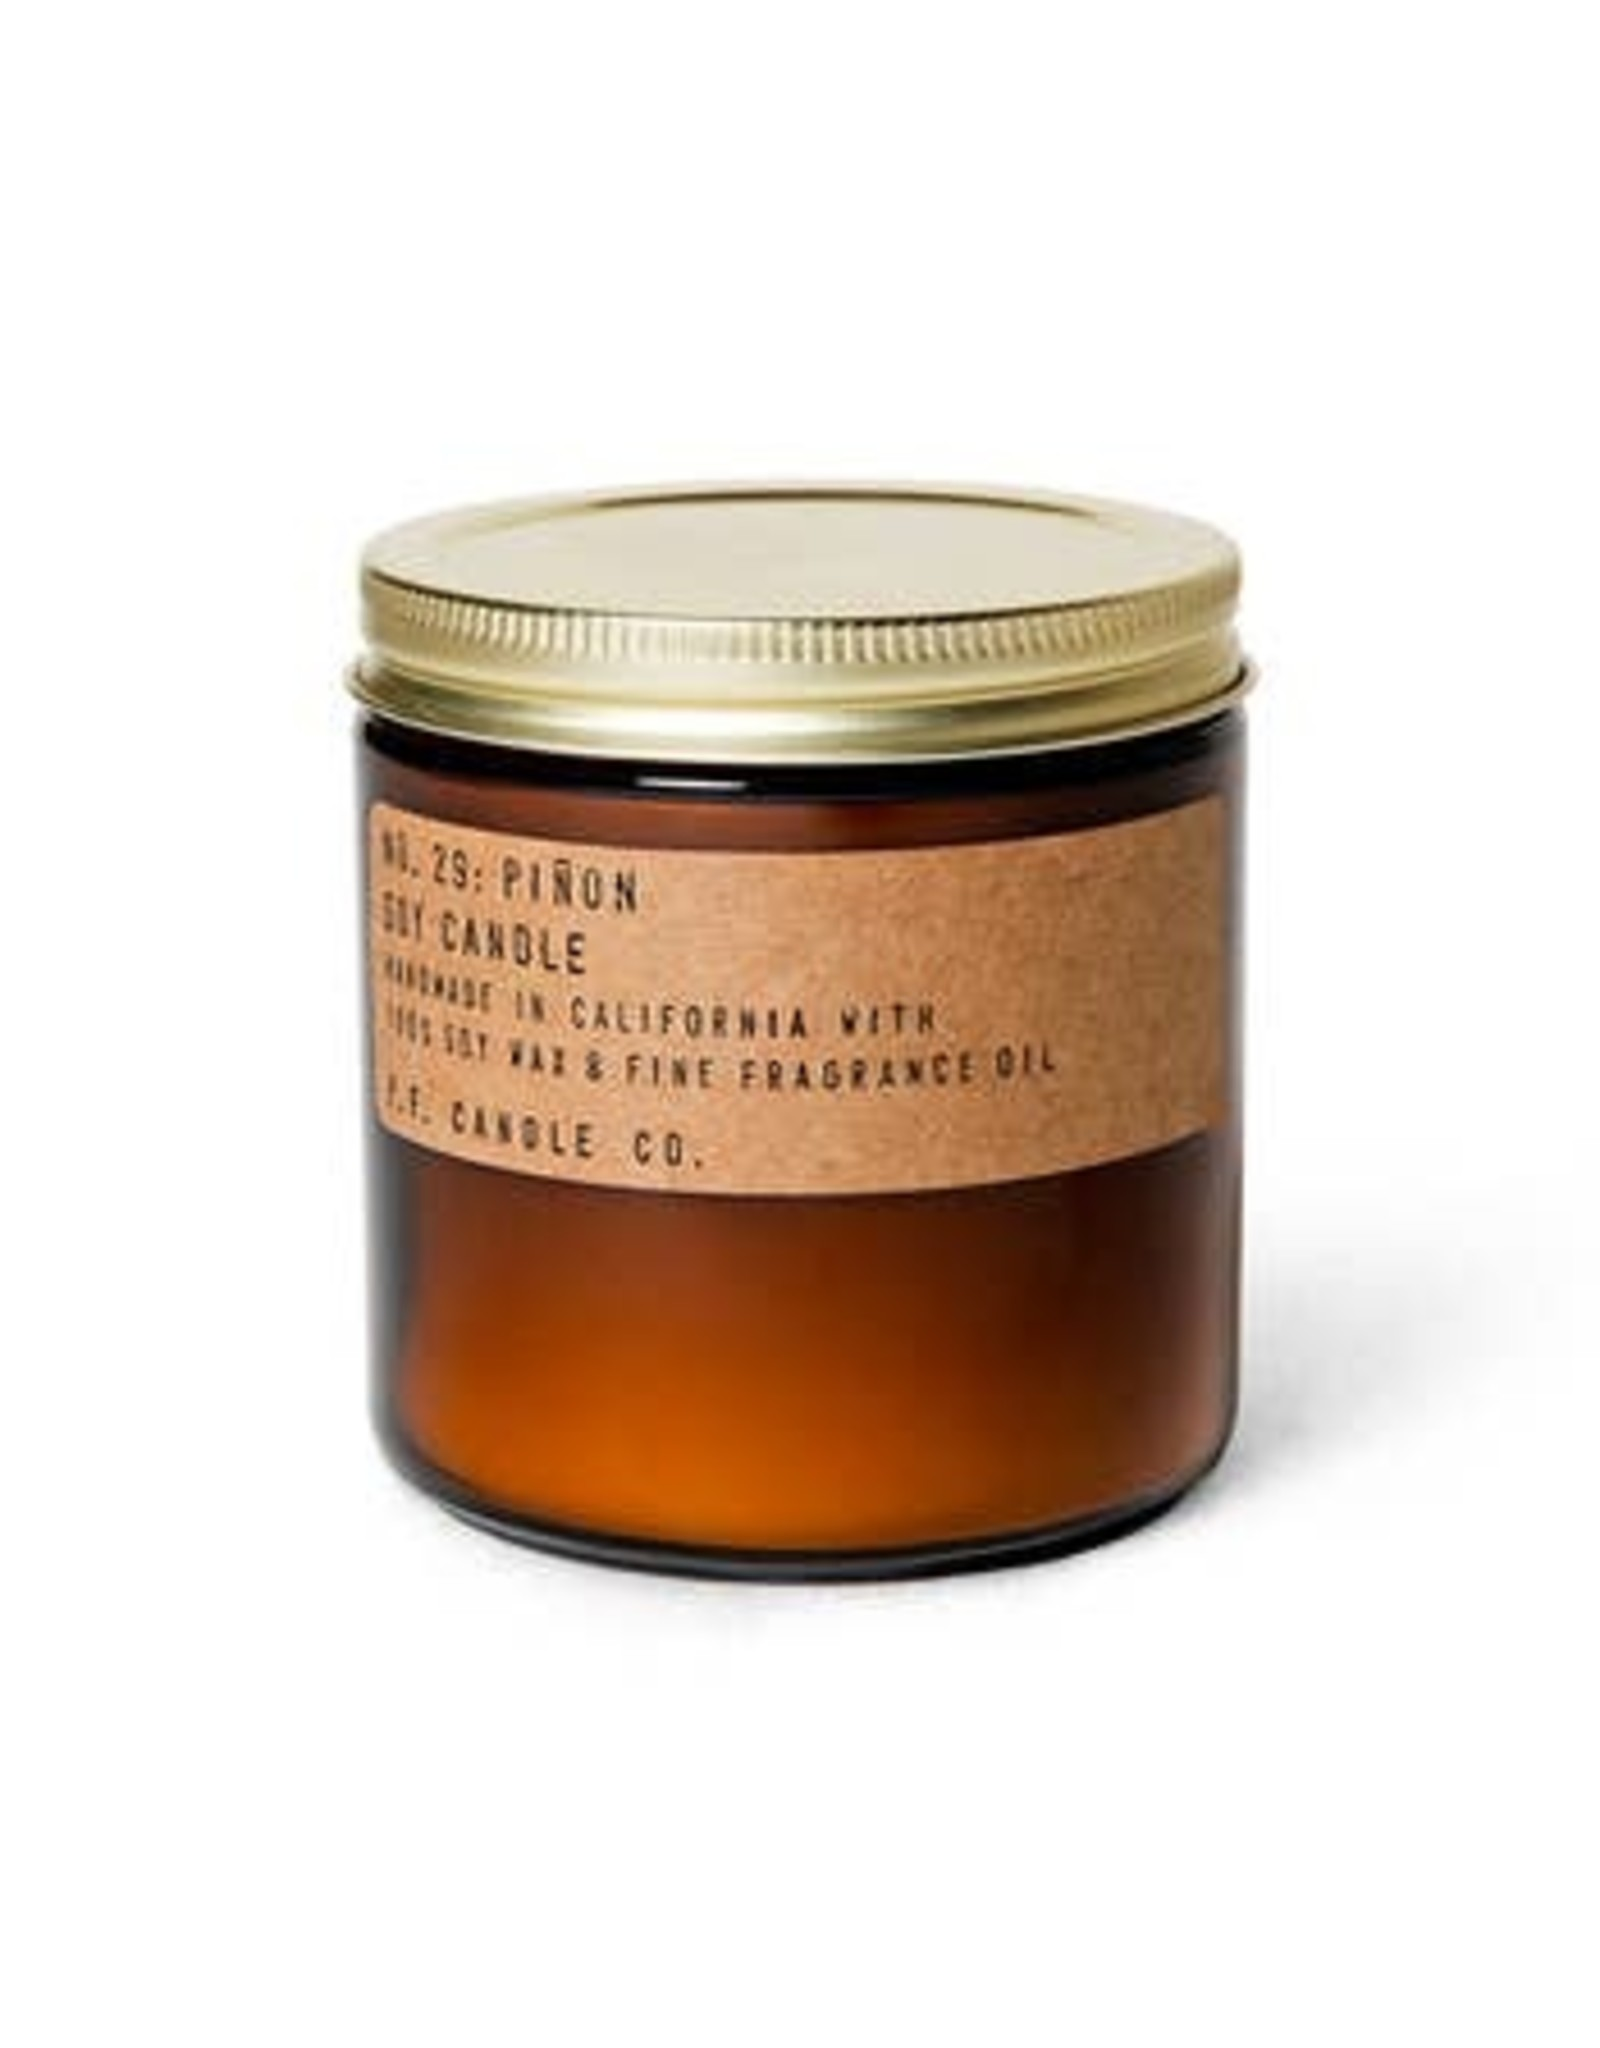 P.F. Candle Co. 7 oz Soy Candle - Pinon